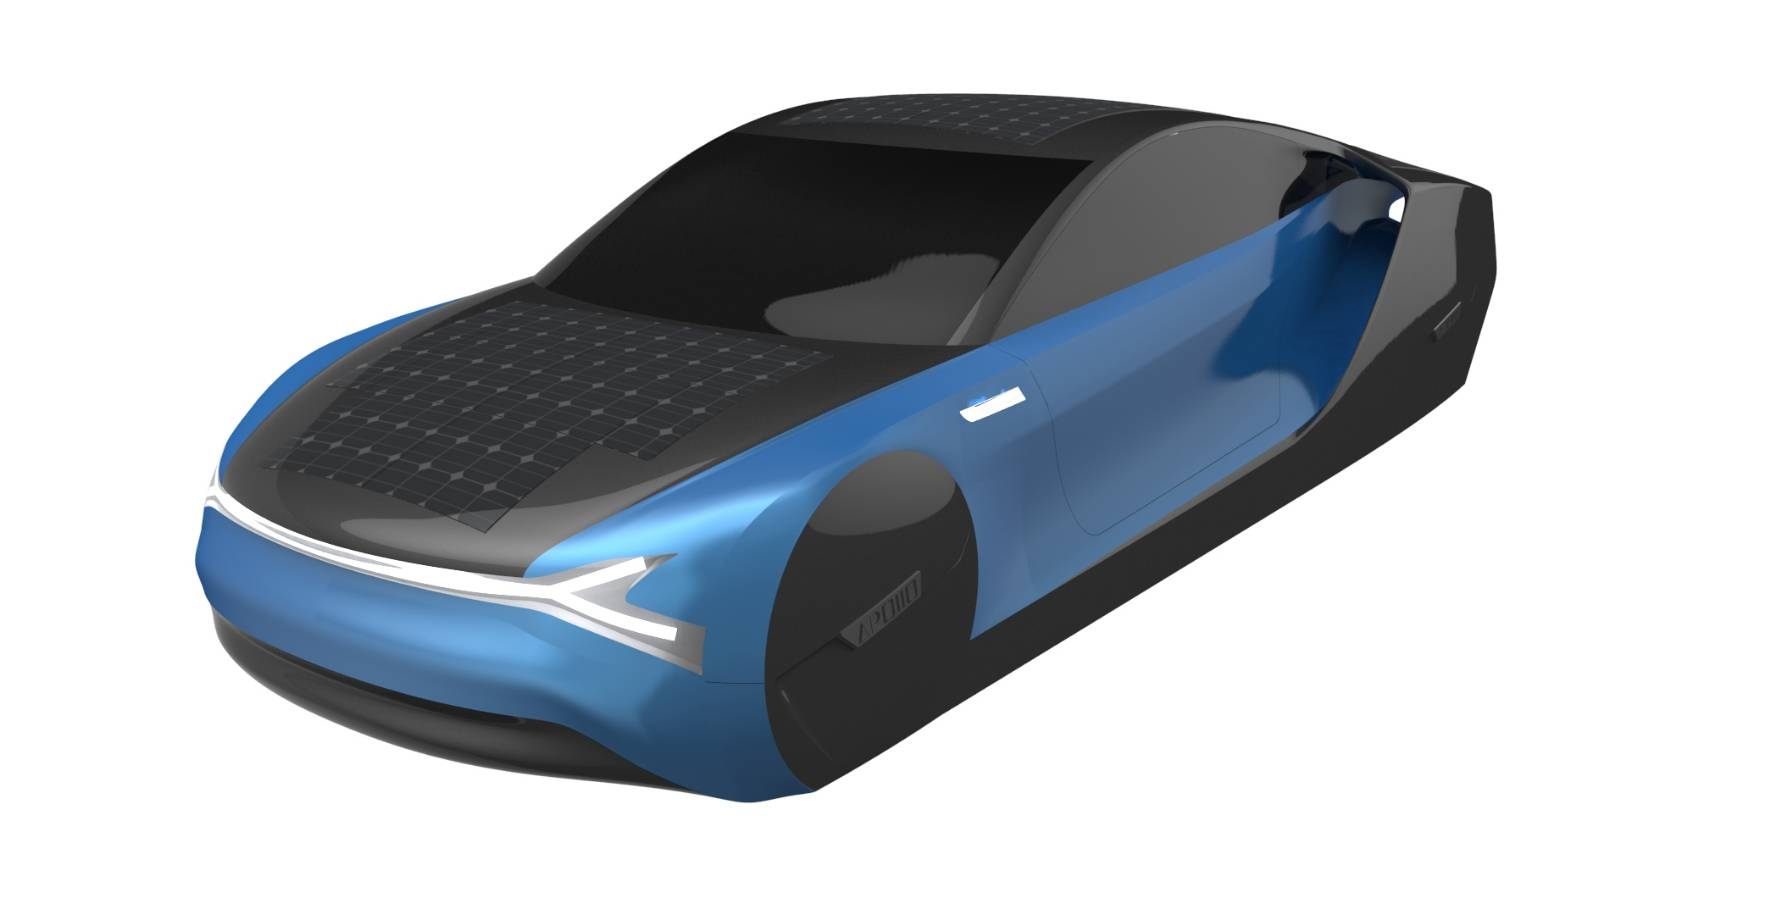 Commercialized solar car